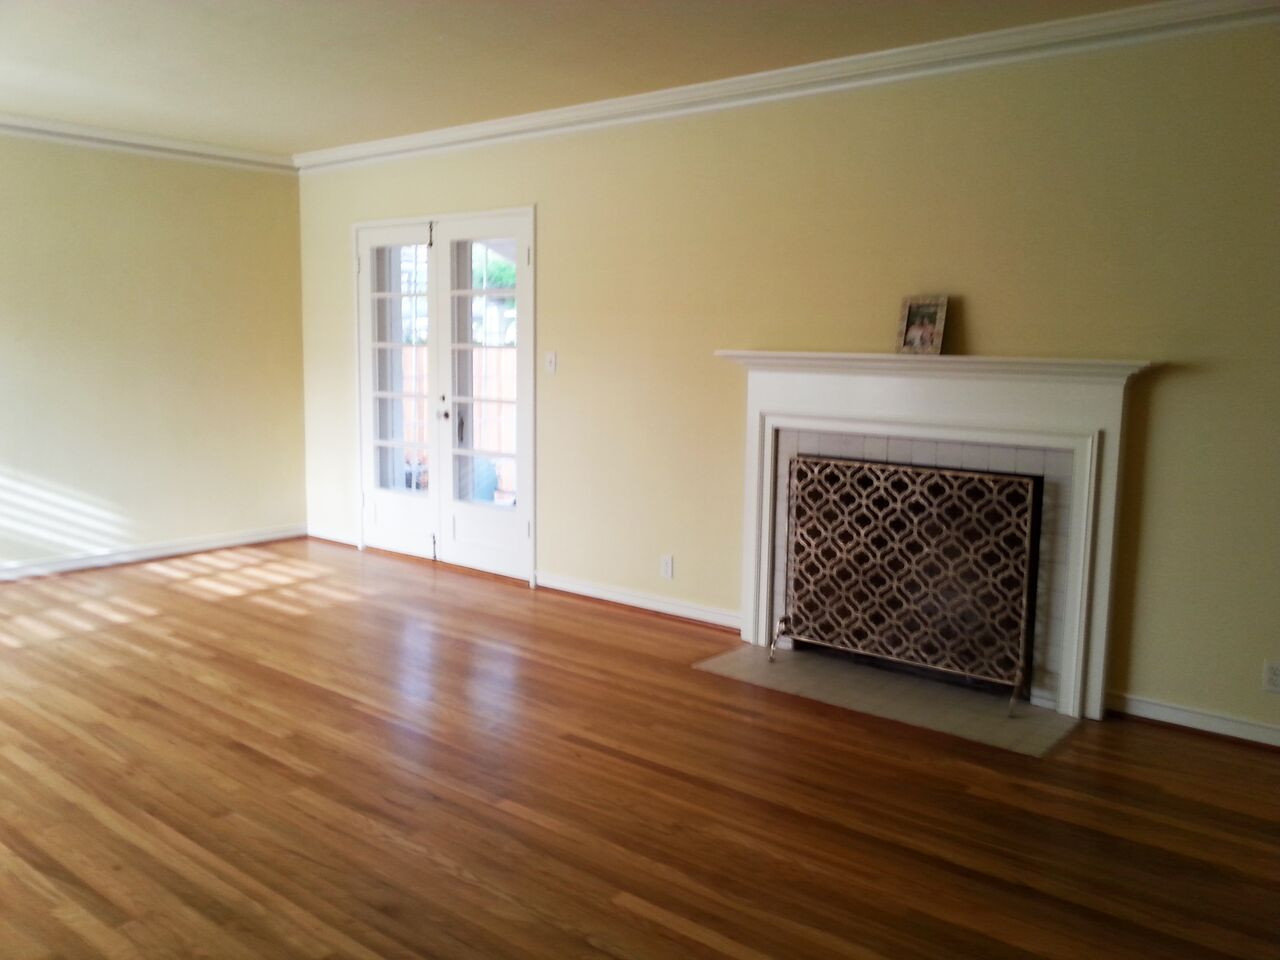 hardwood floor refinishing modesto ca of robinsons interiors carpet one hardwood floor refinishing within i